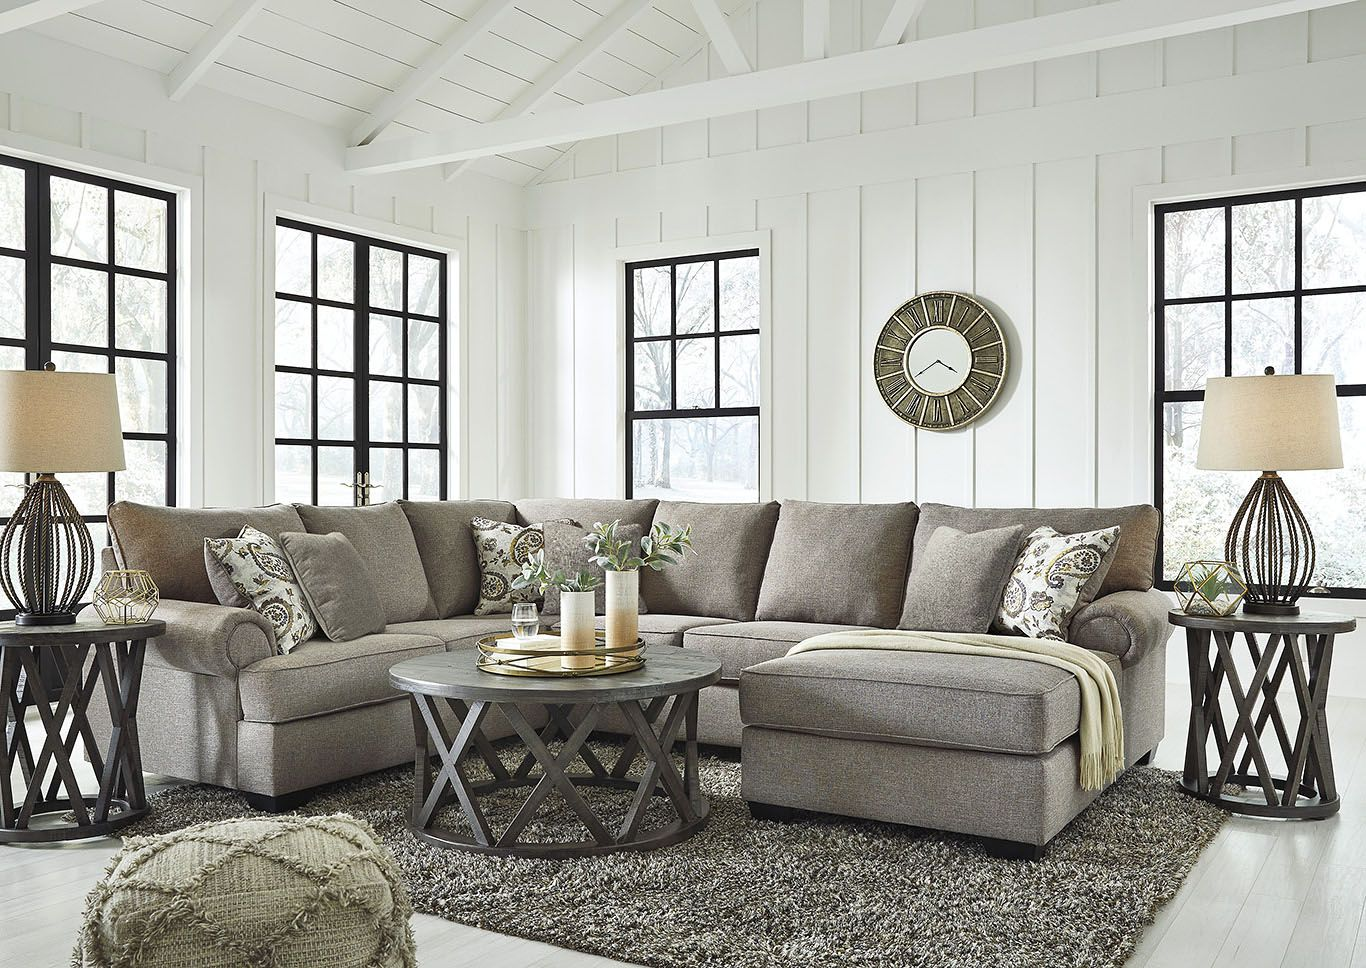 Austin S Couch Potatoes Furniture Stores Austin Texas Renchen